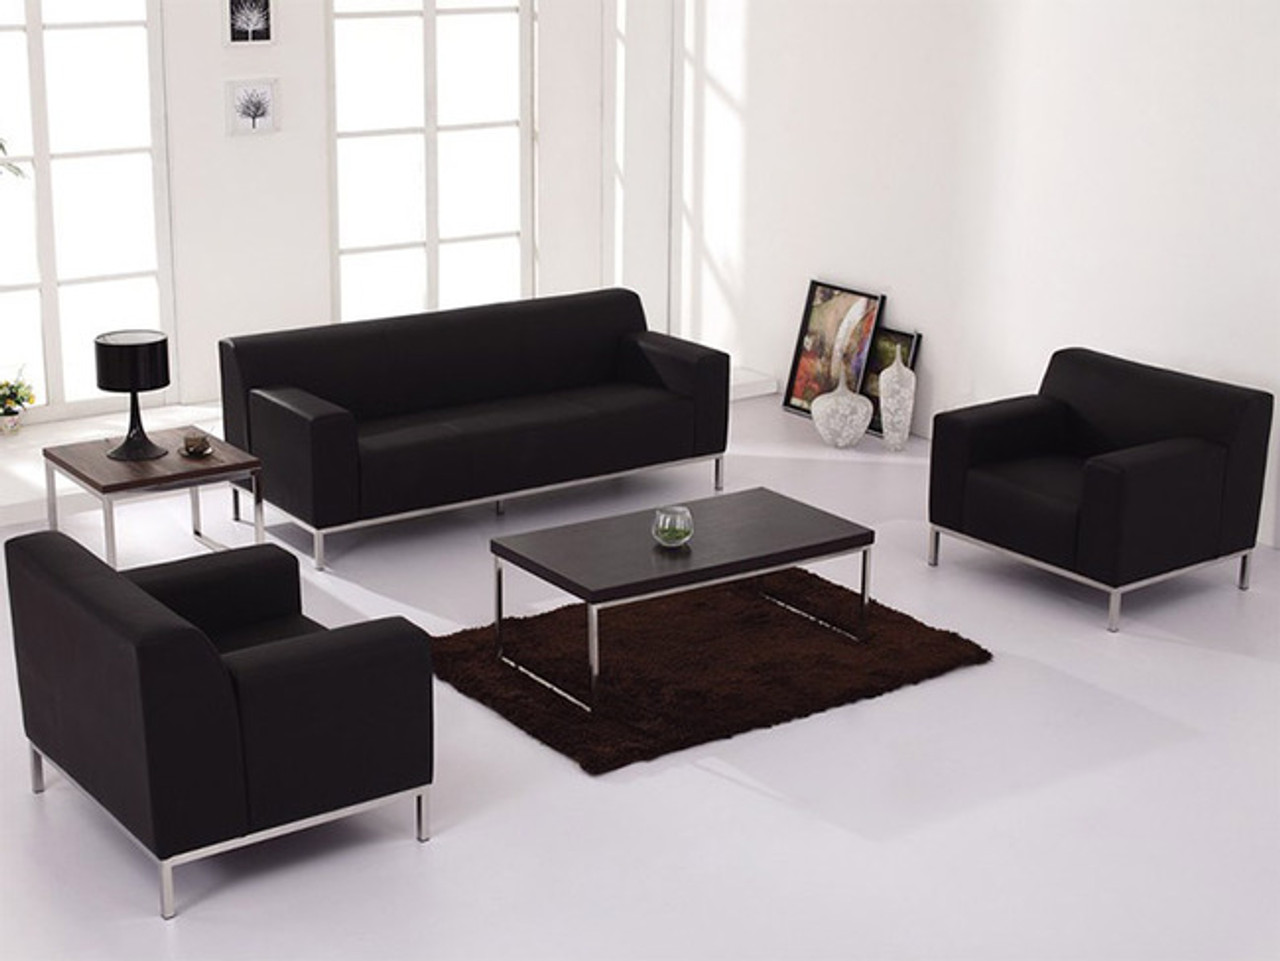 46pc Modern Leather Office Reception Sofa Set, FF-46-46-S46